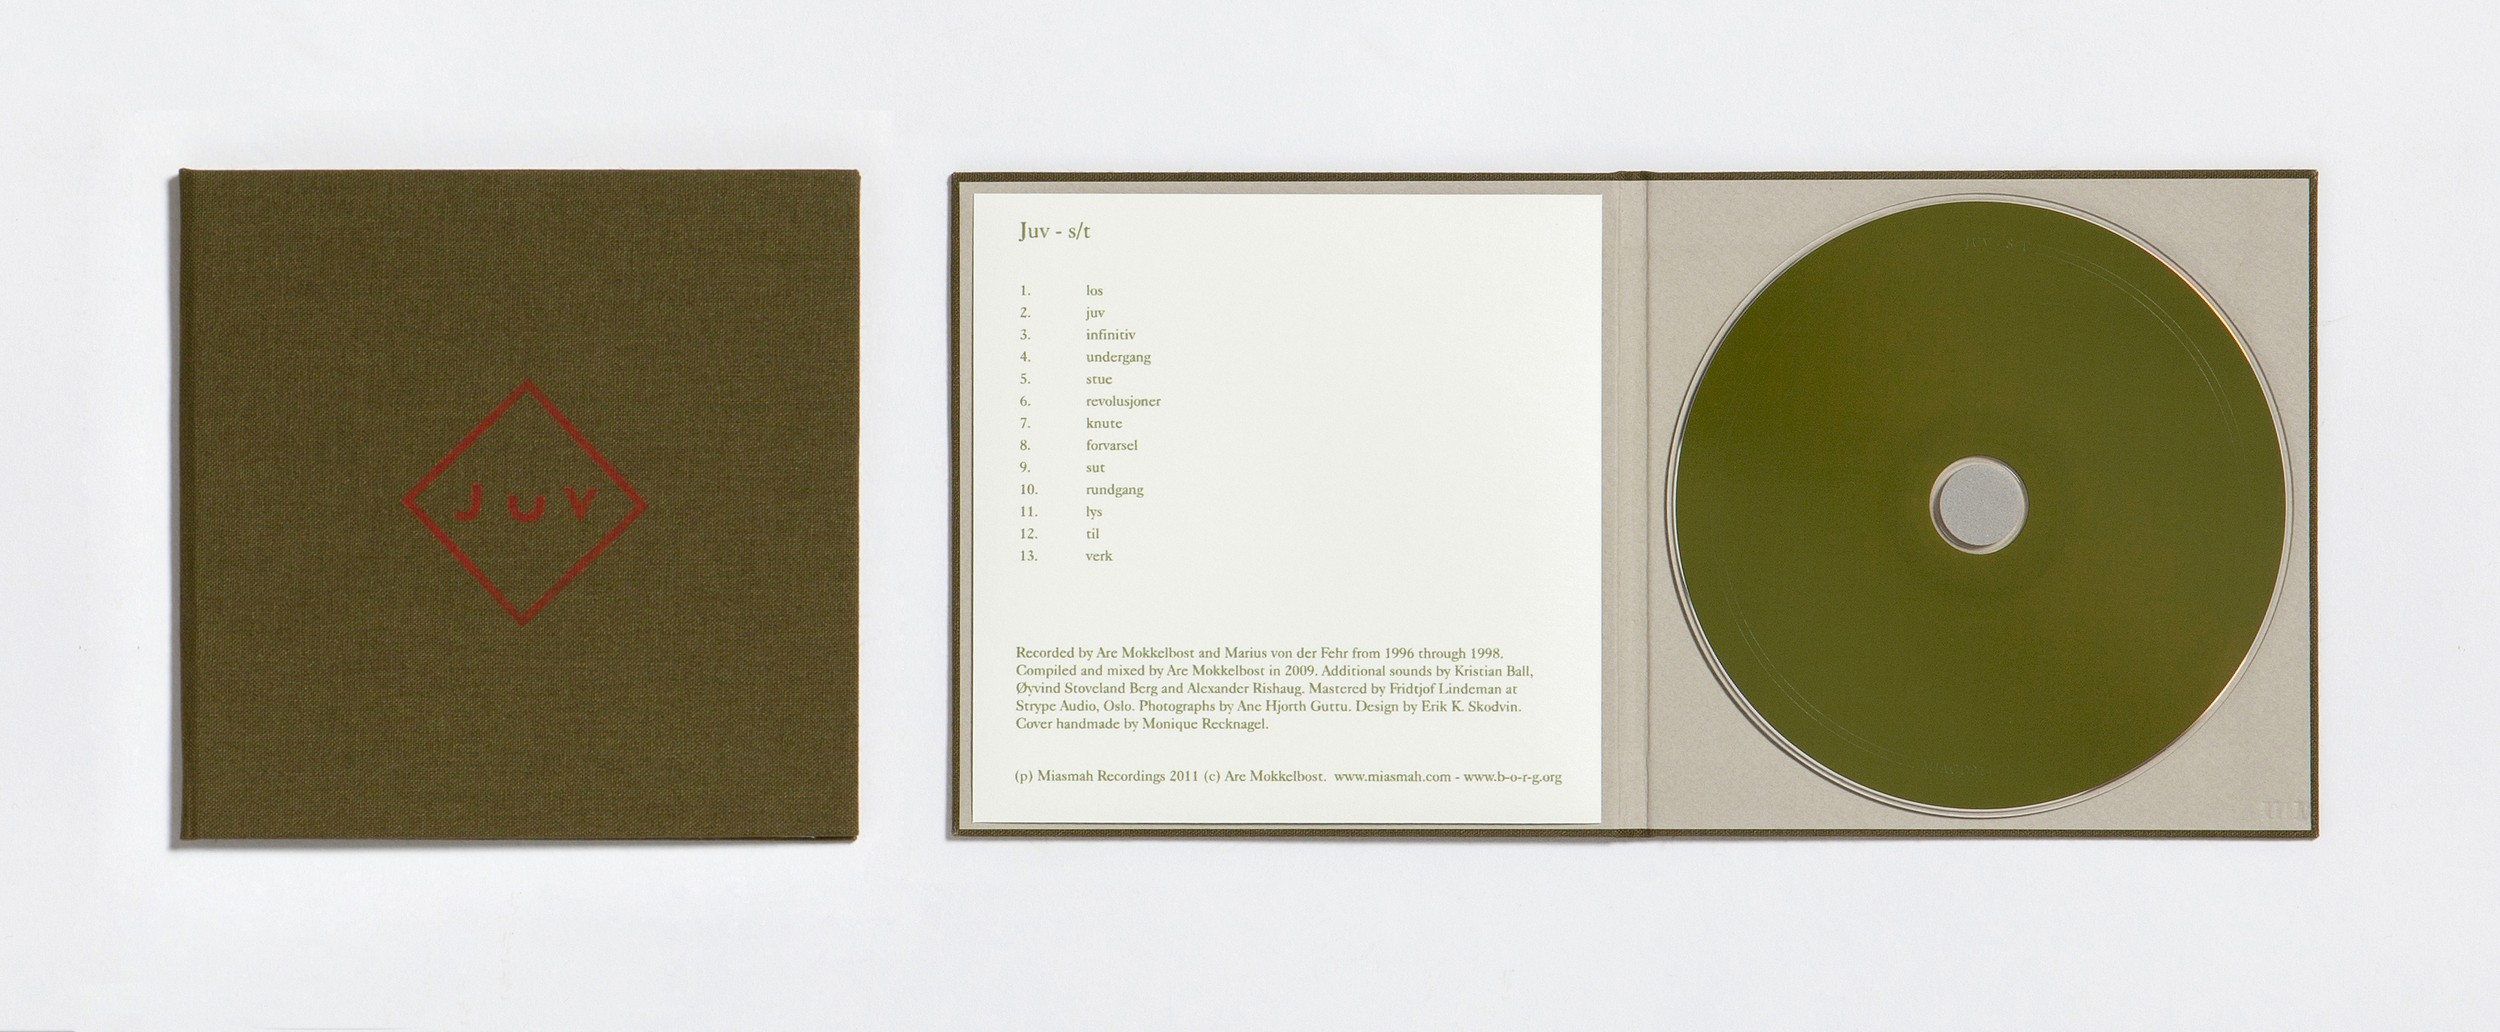 Edition of 100 CDs on  Sonic Pieces , with book bound sleeve and silk-screened front, hand made by Monique Recknagel. Design by Erik Knive Skodvin.